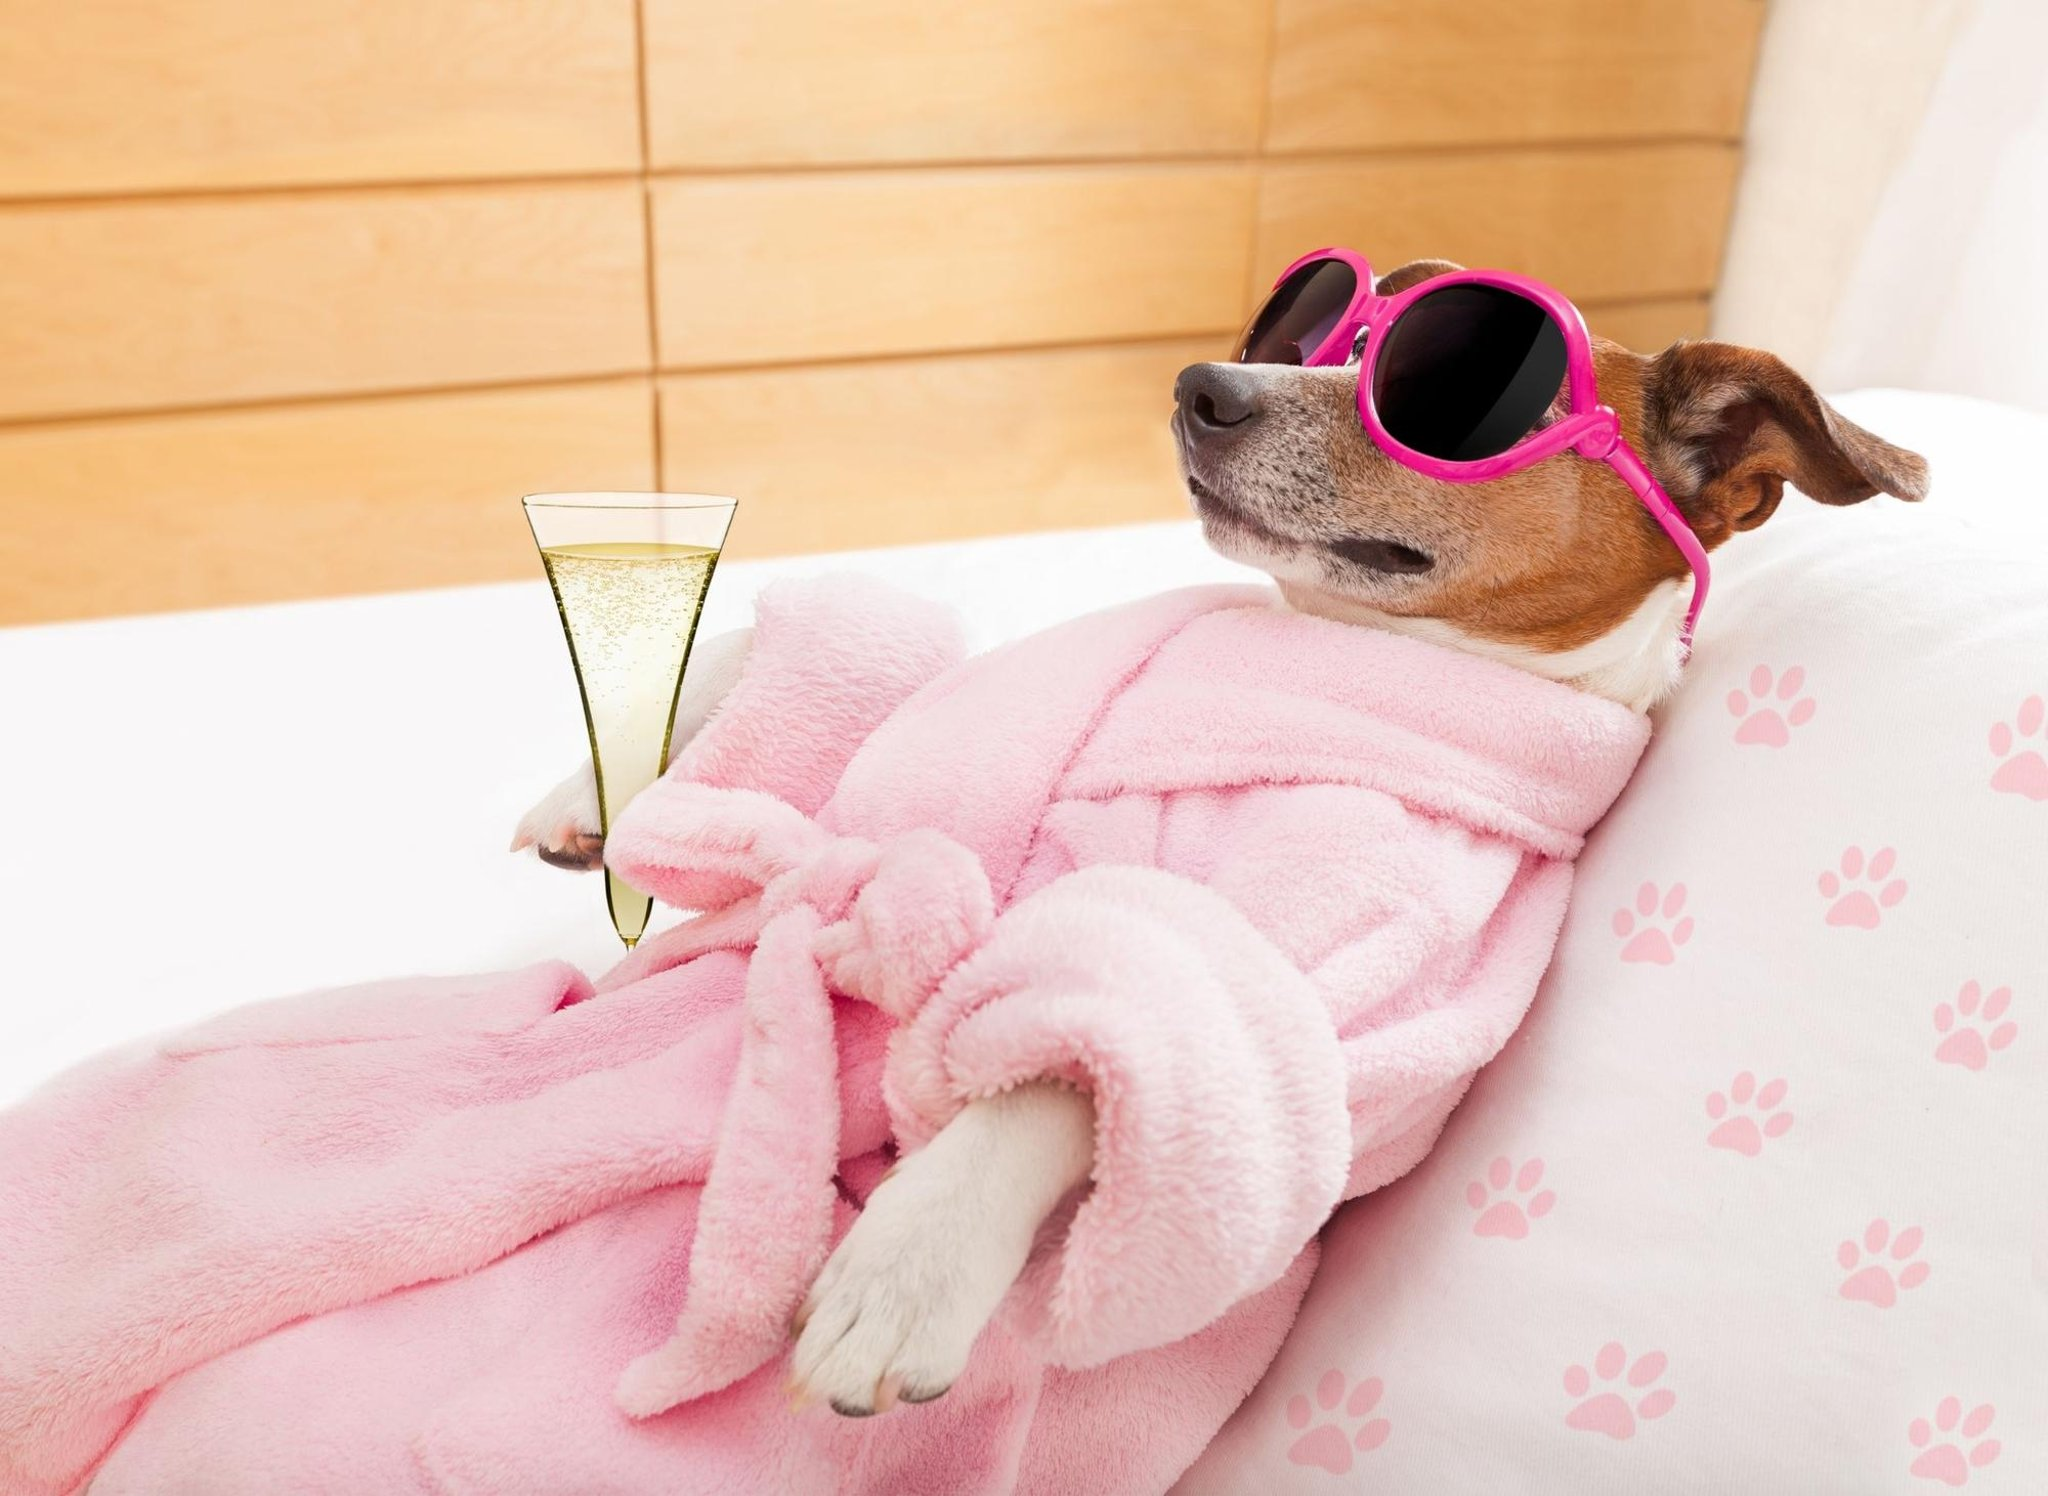 10 breeds of adorable dog that are high maintenance and need plenty of pampering